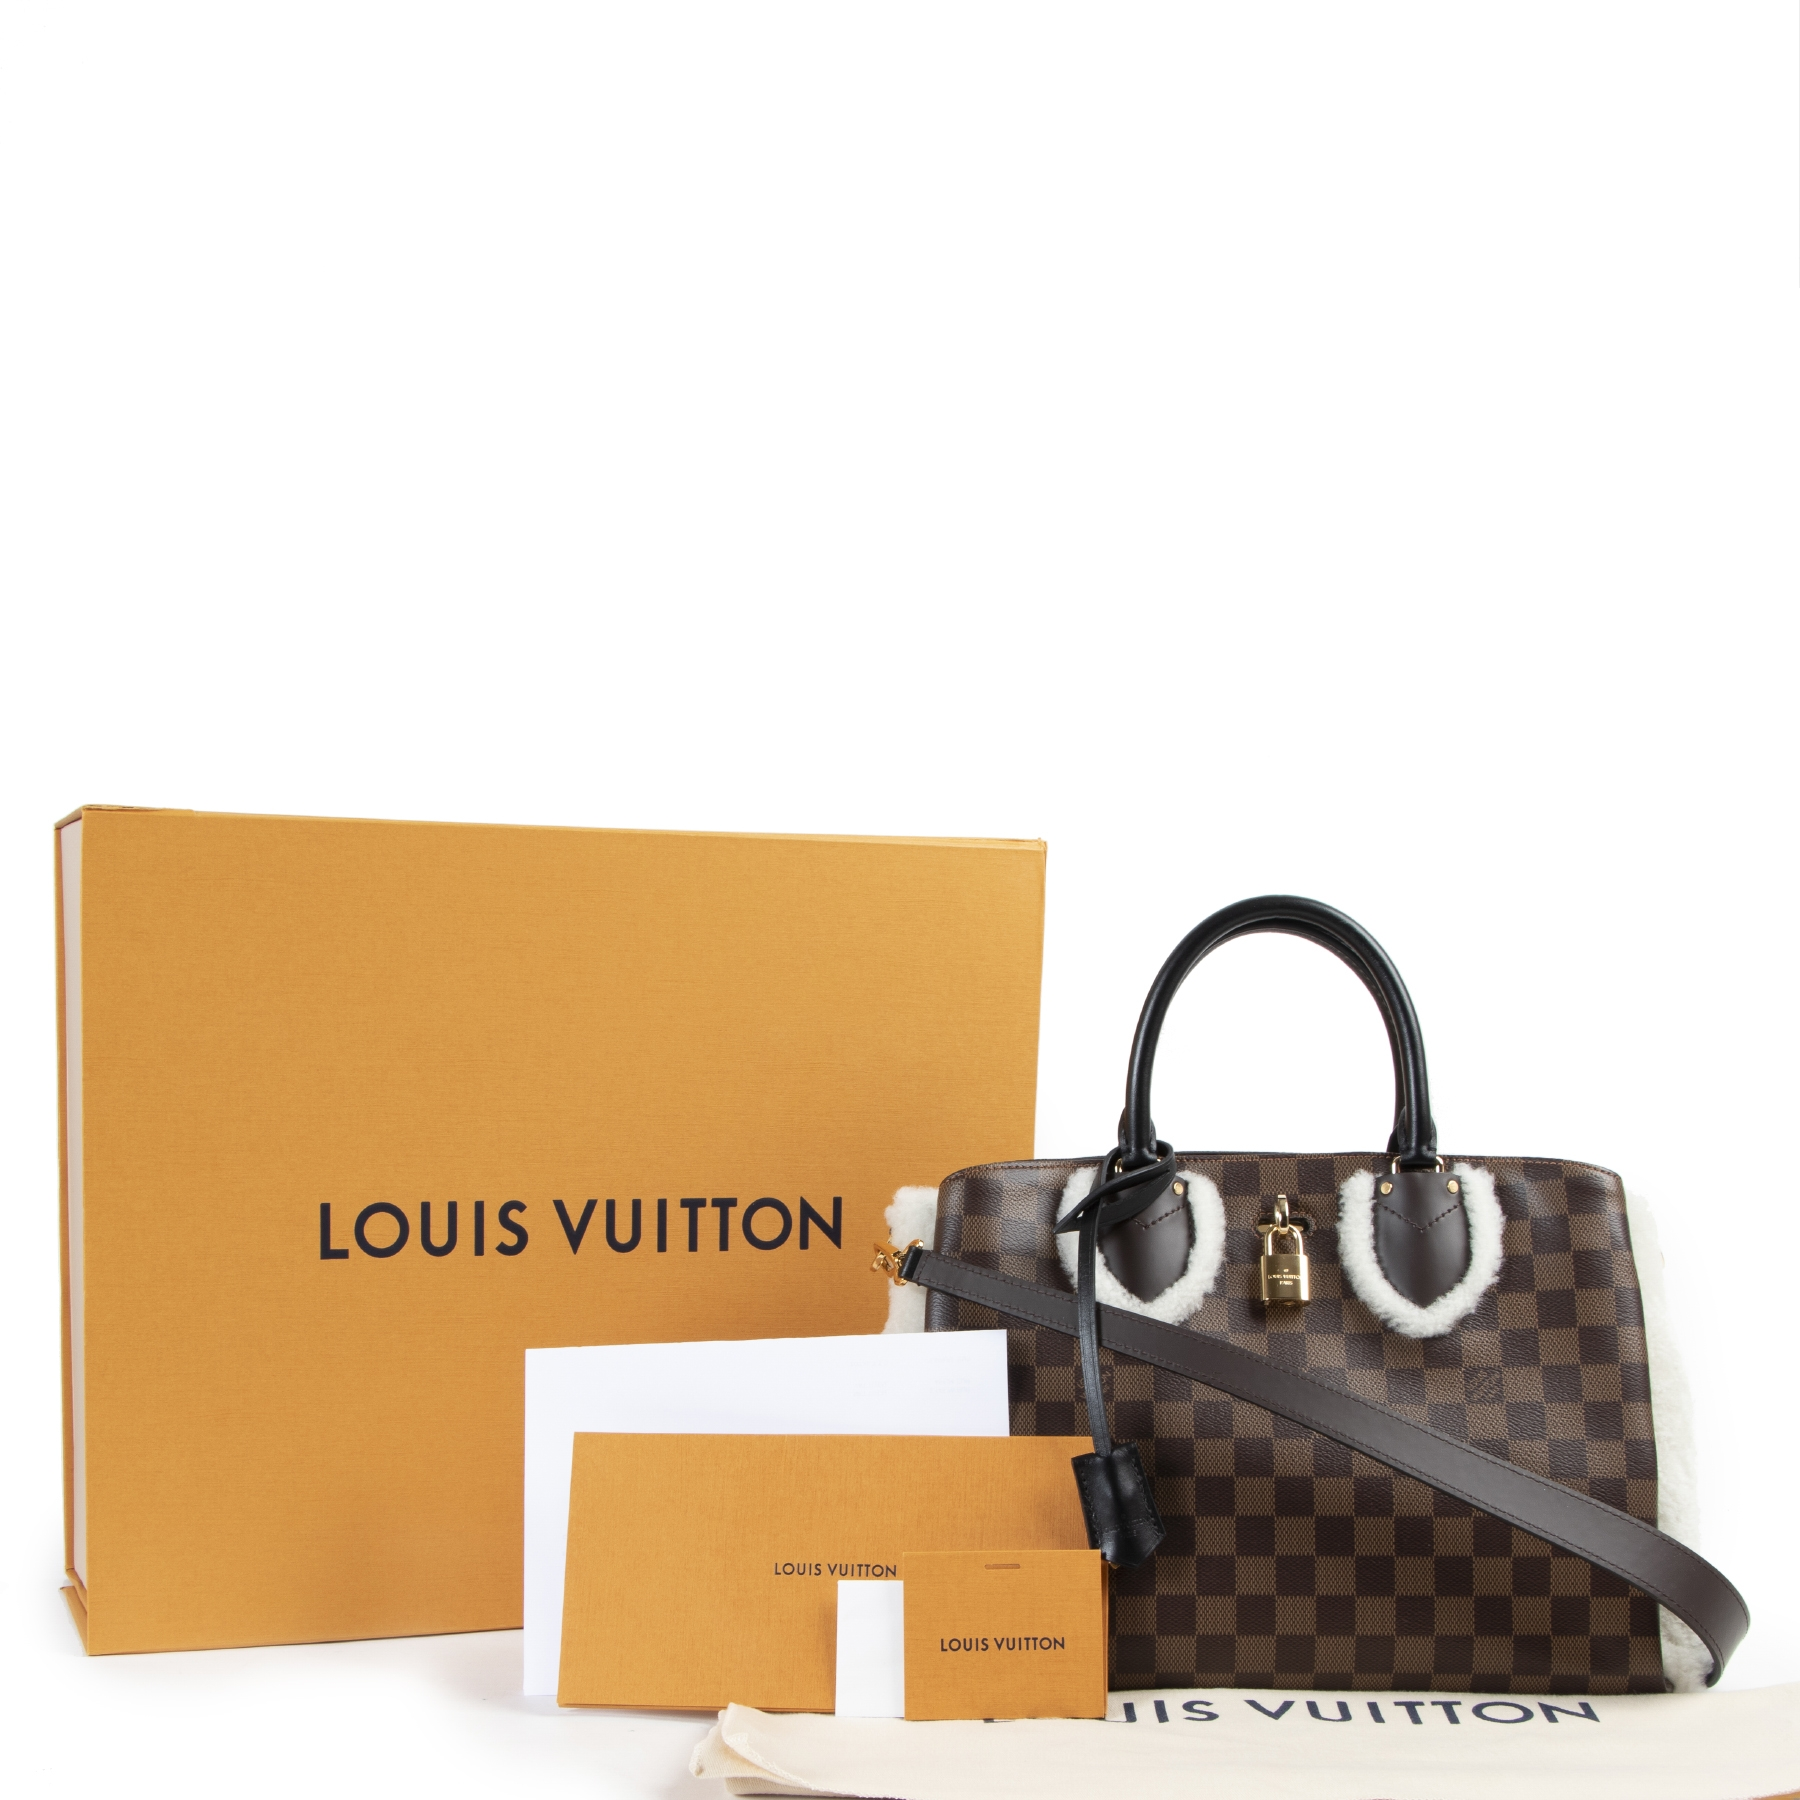 shop safe online secondhand Louis Vuitton Limited Cuir Taurillon Damier Ebene Normandy Shoulder Bag